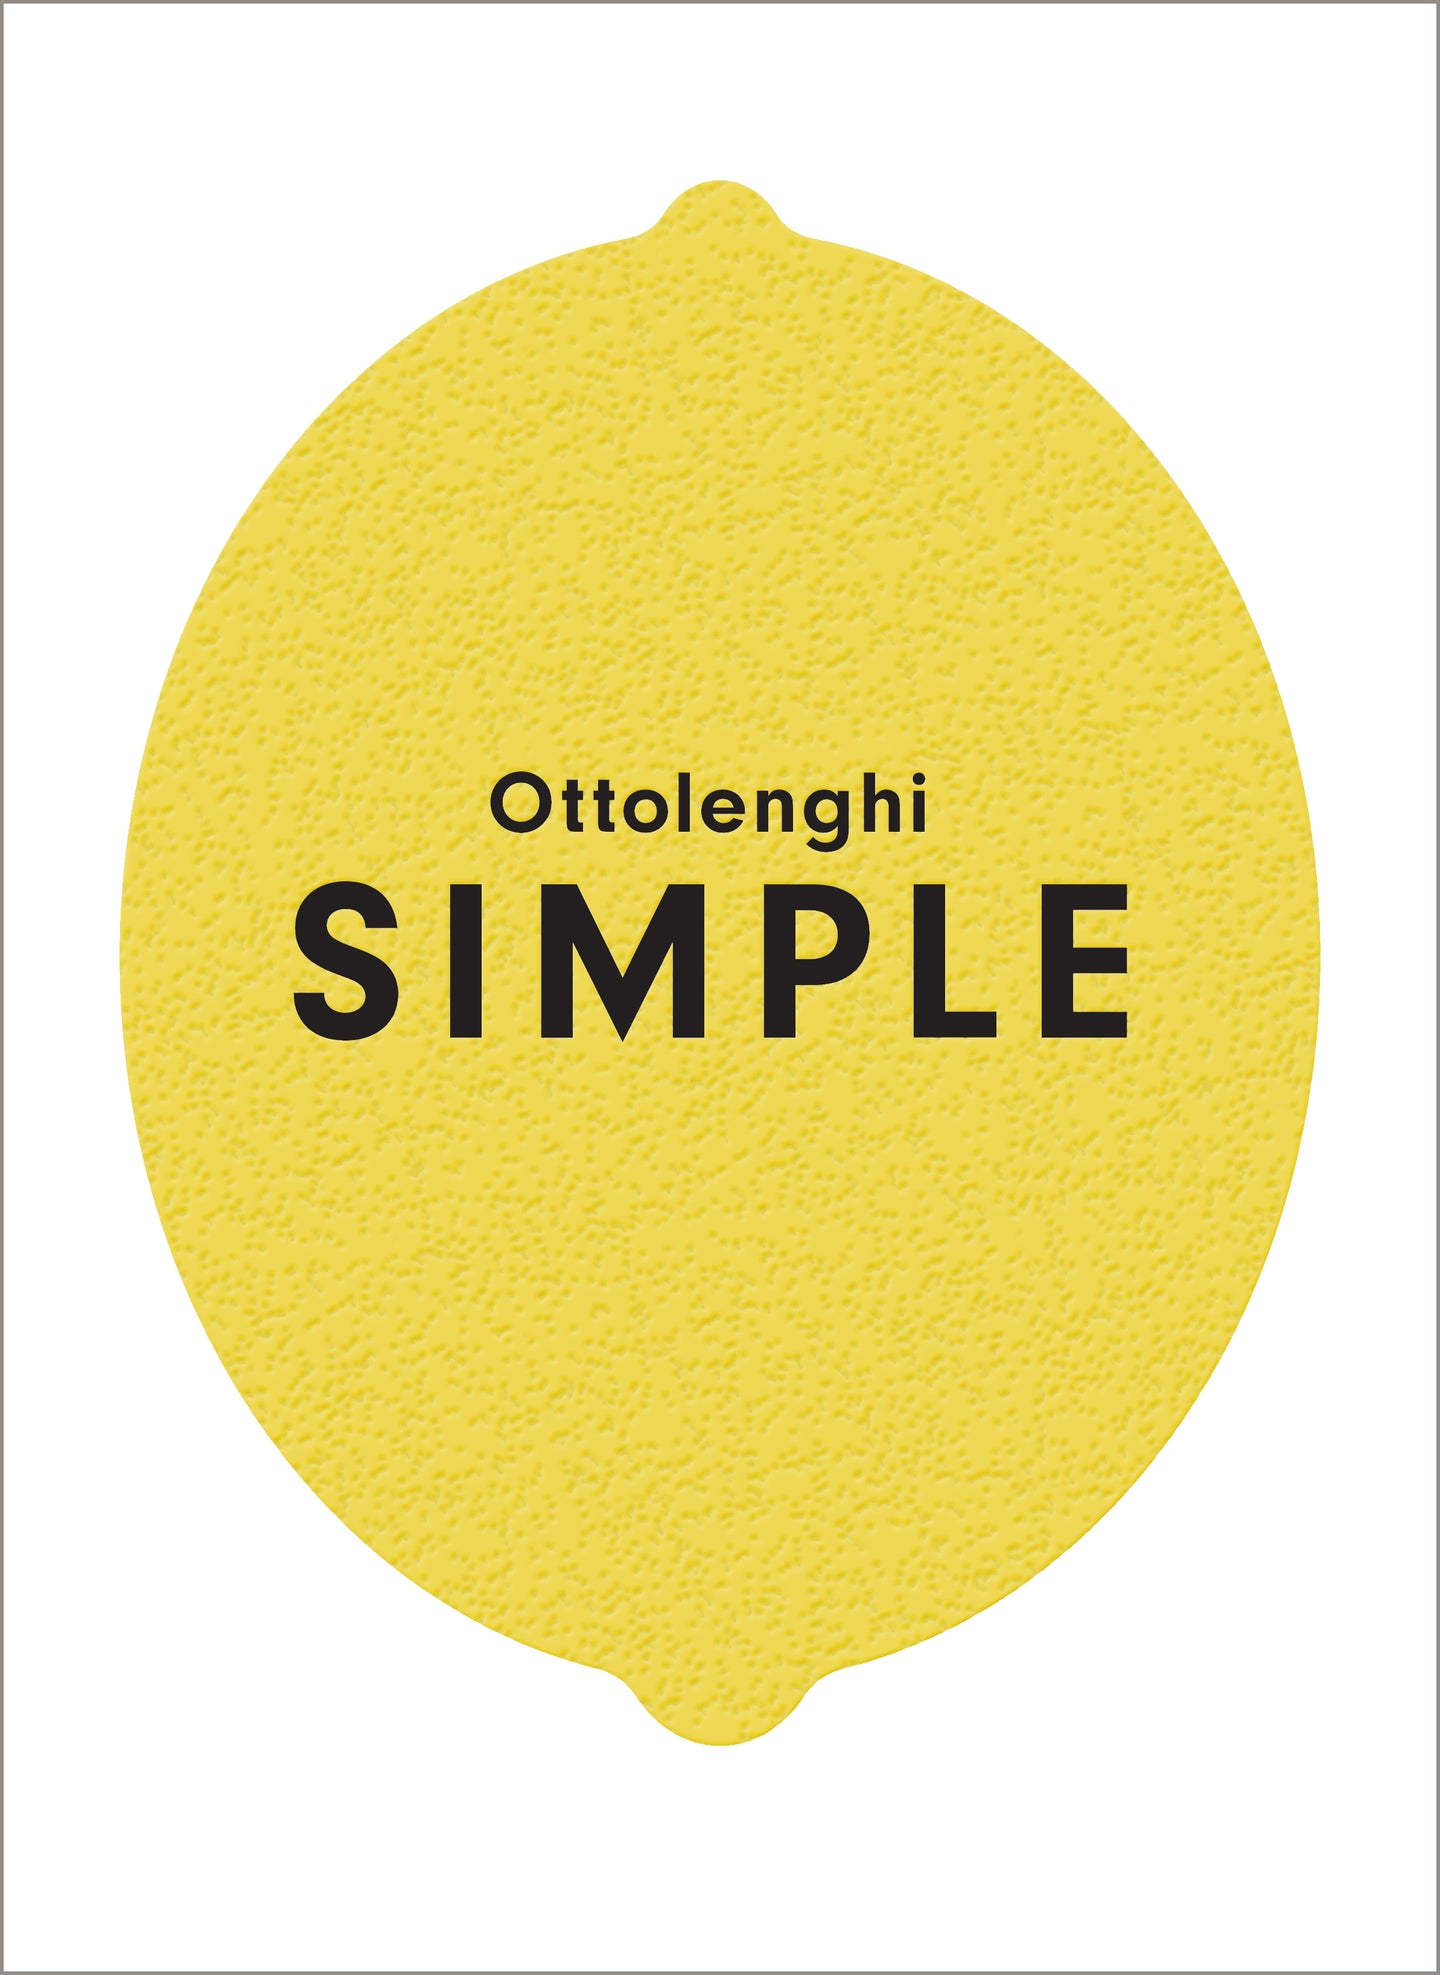 Simple - Ottolenghi's Simple Cookbook